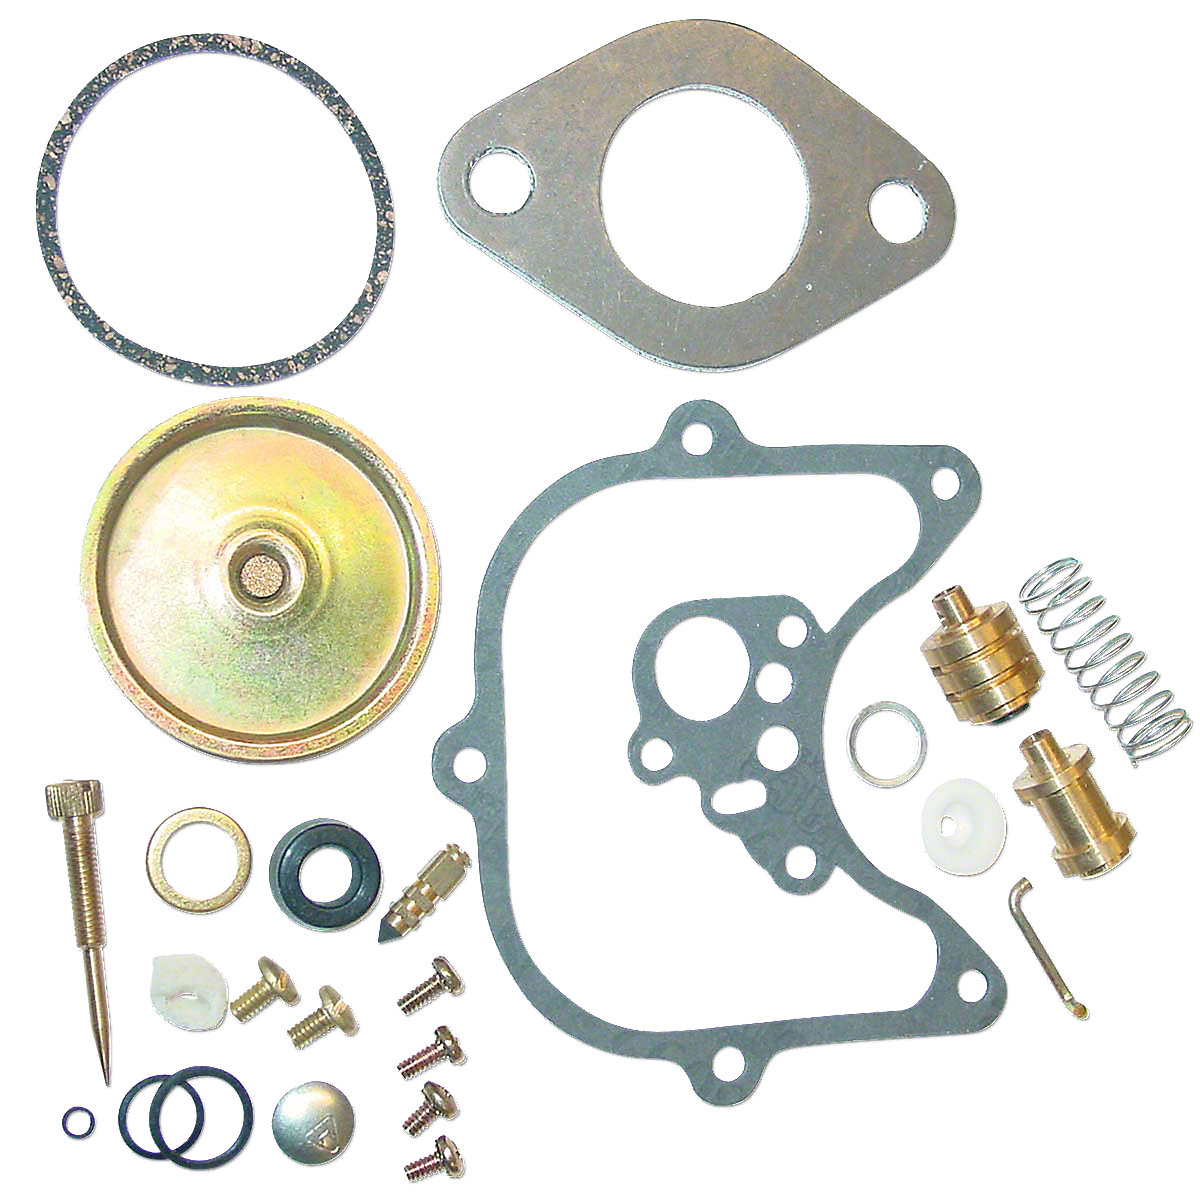 Tractor Carburetor Rebuilding : Holley carburetor repair kit carb